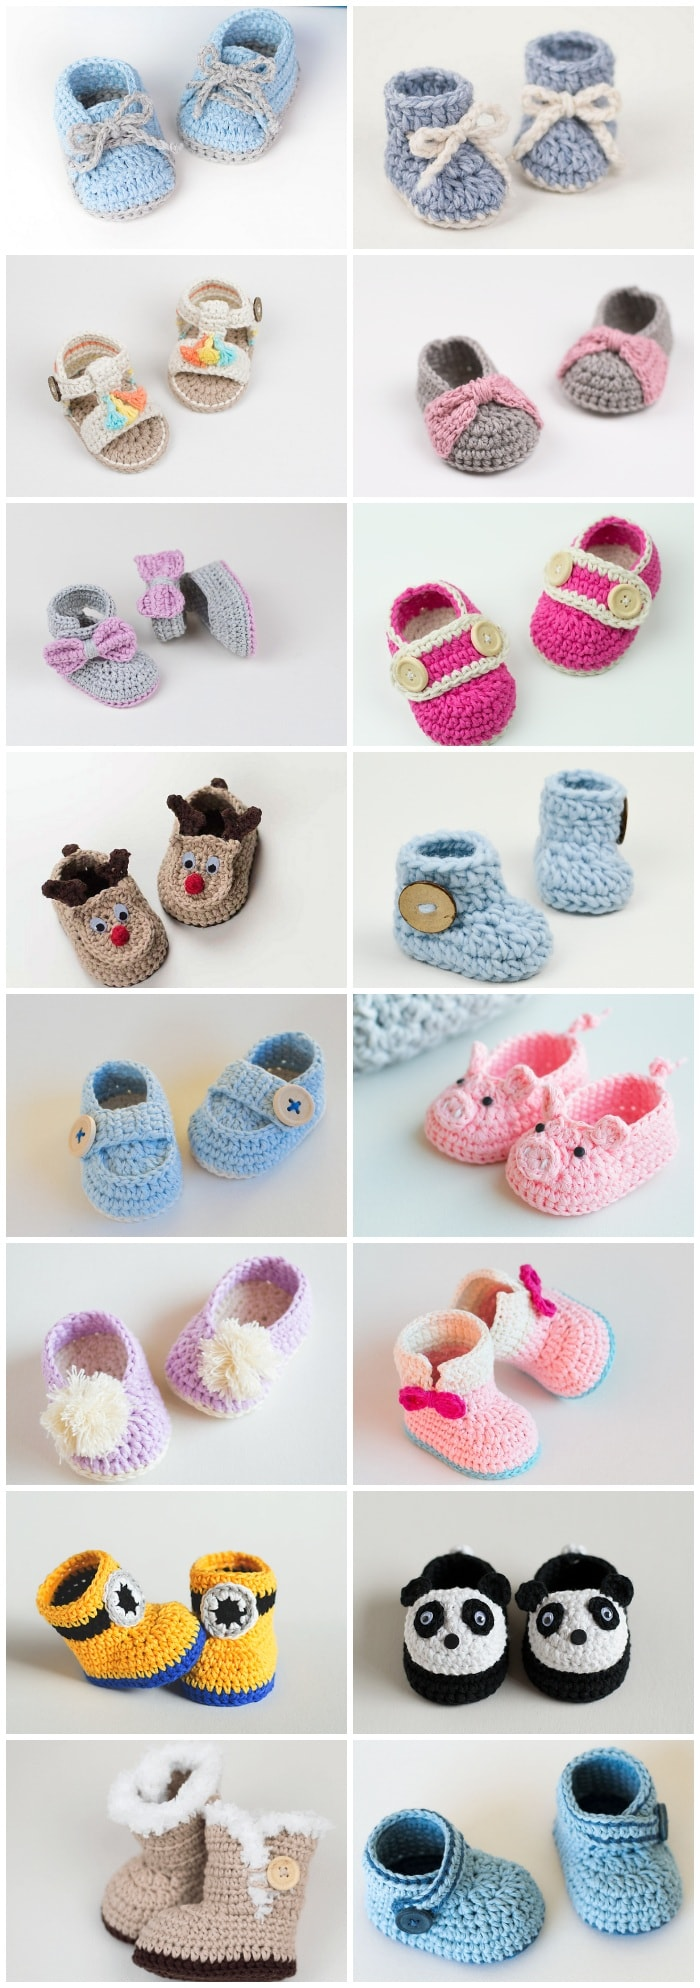 Crochet baby booties are among the most popular handcrafted projects. They are cute and beautiful. Well there are 16 Free booties to choose...